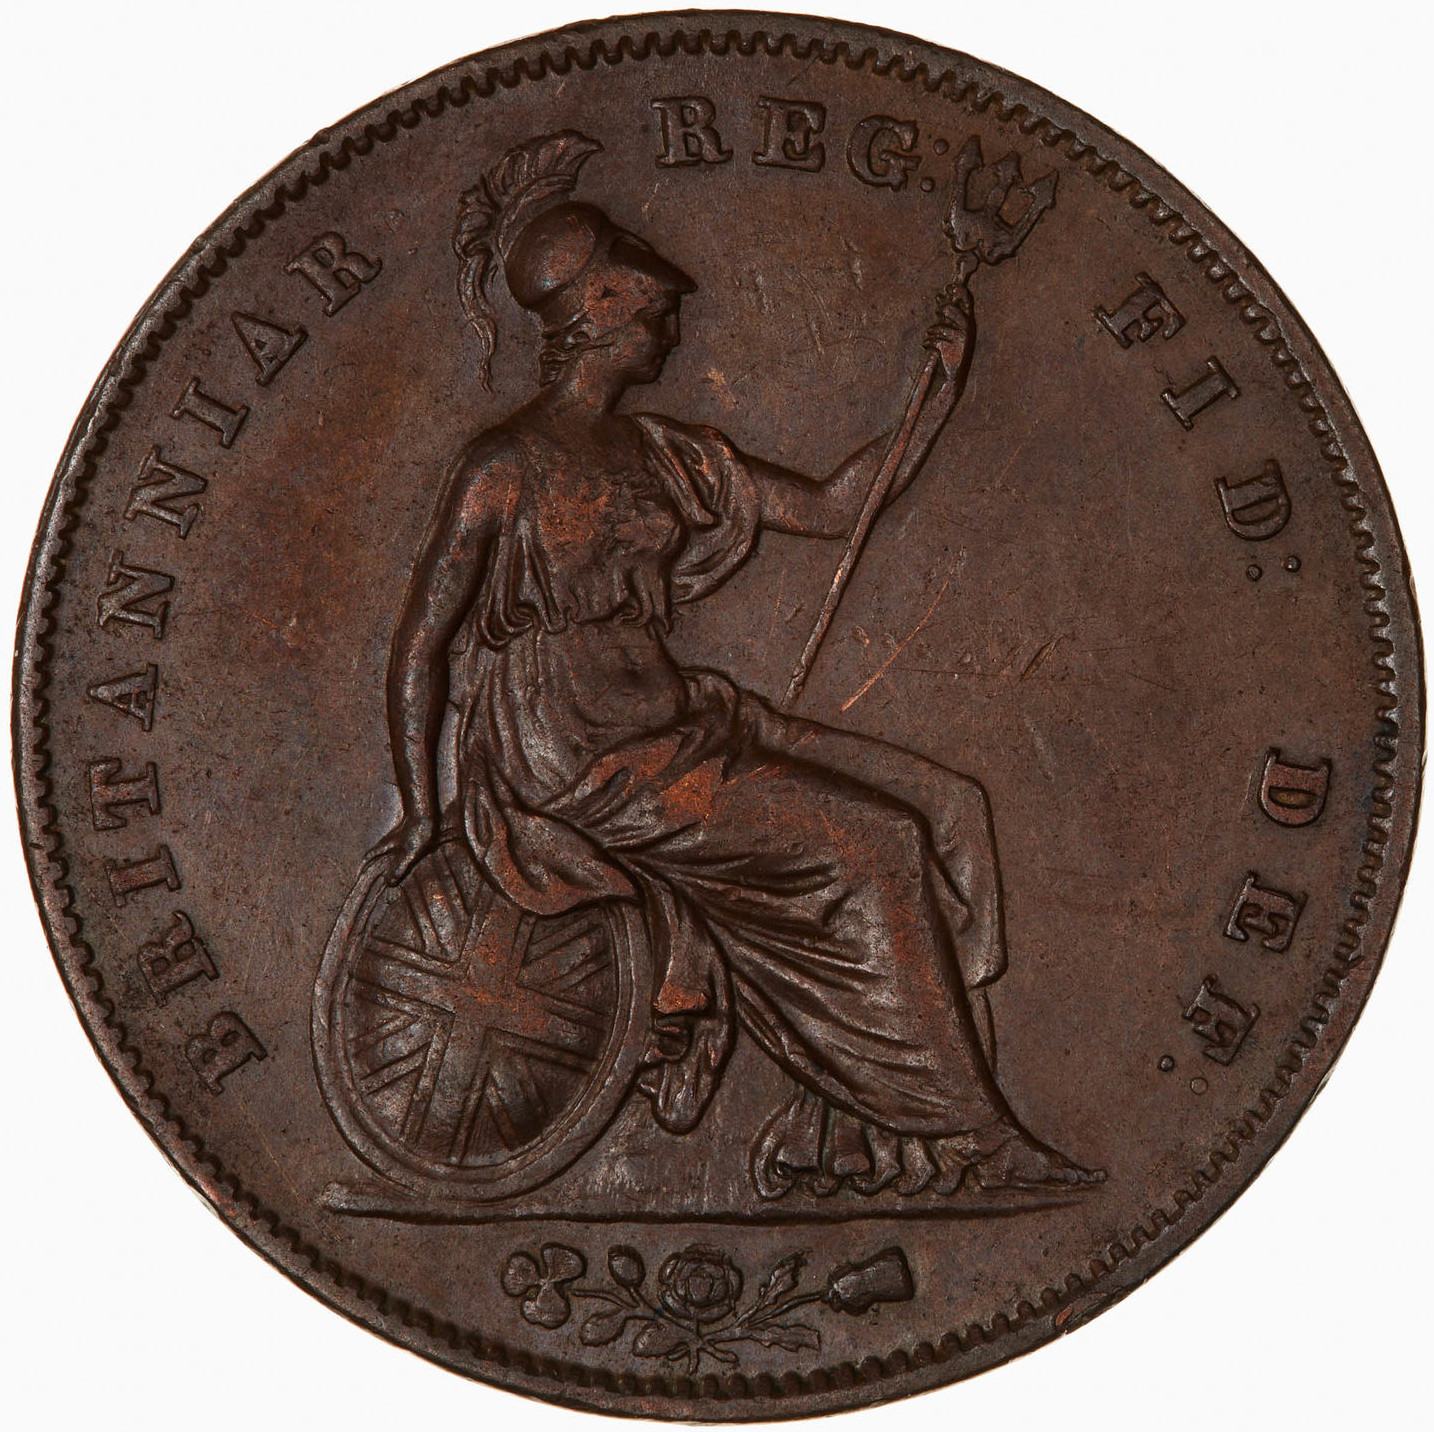 Penny 1847: Photo Coin - Penny, Queen Victoria, Great Britain, 1847